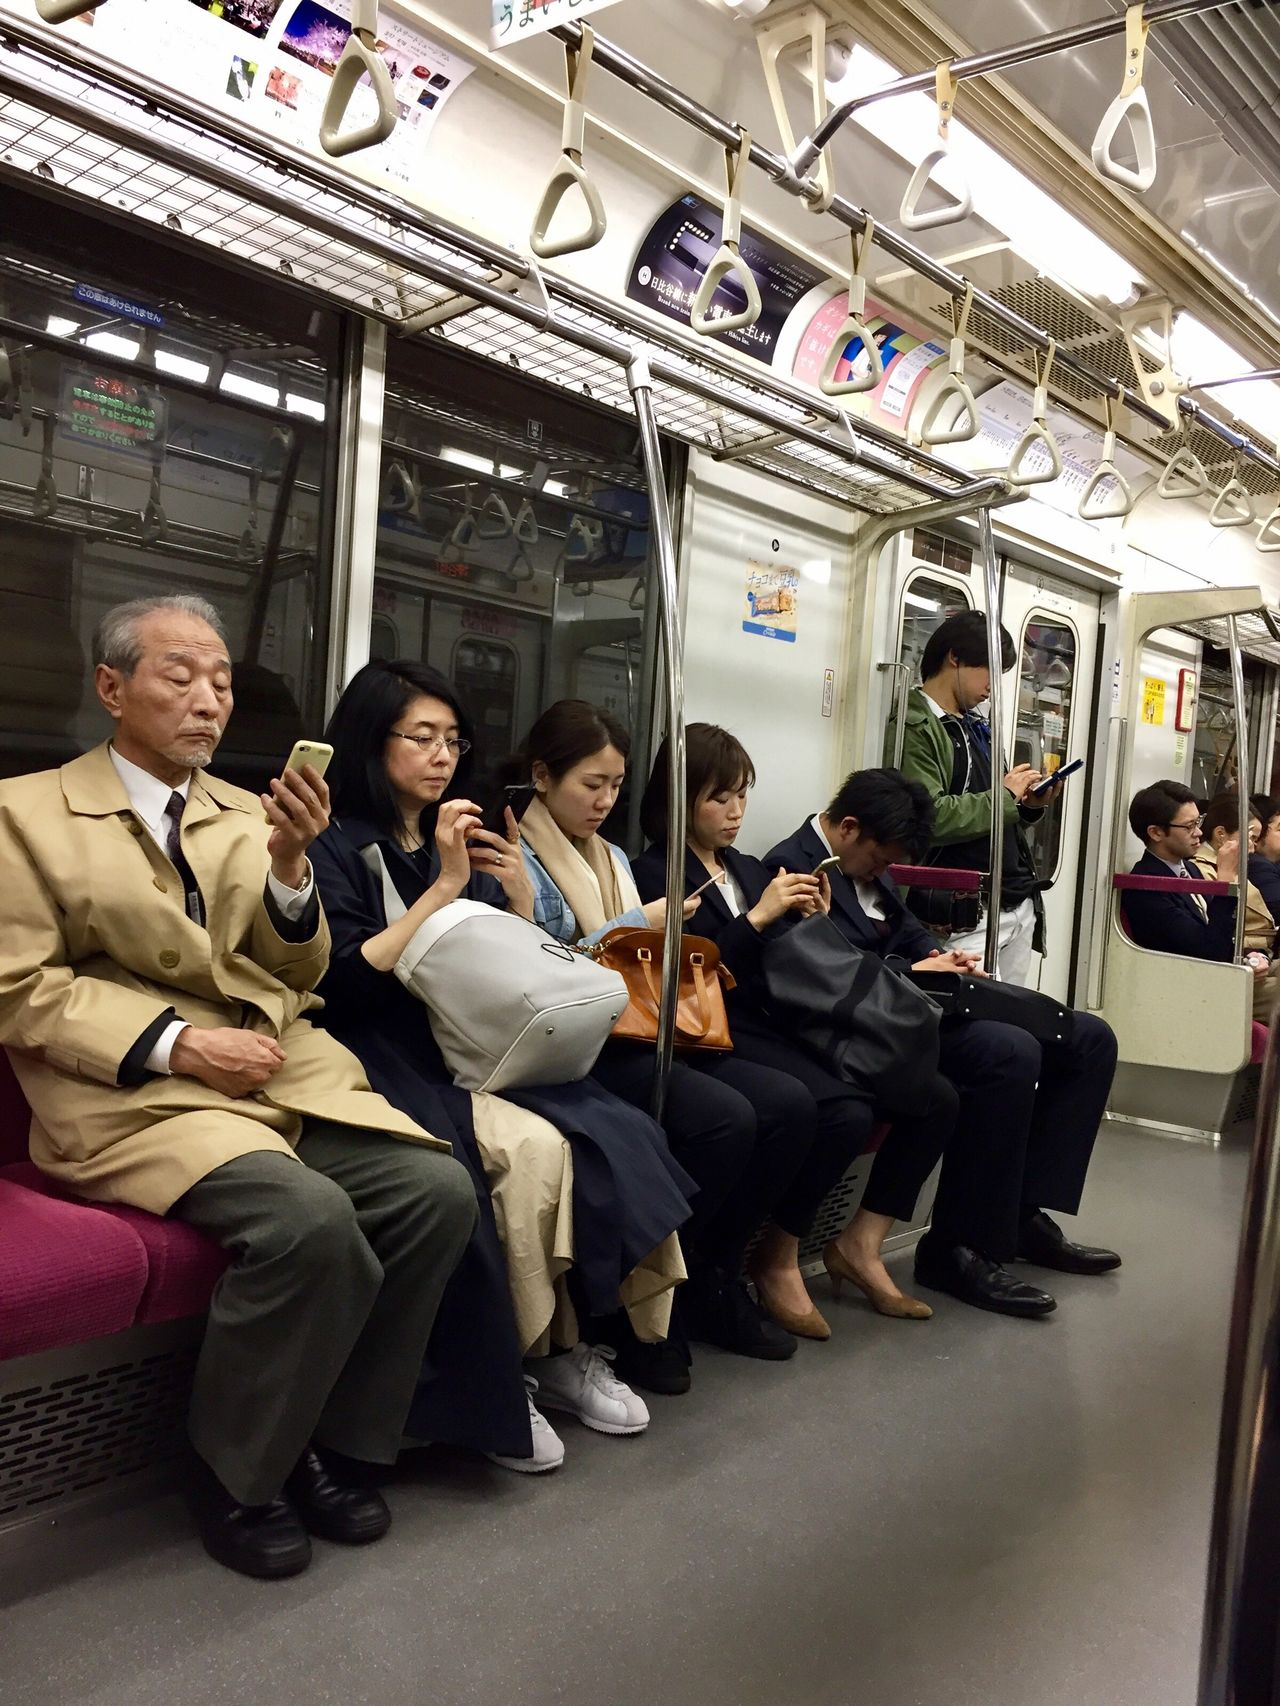 Tokyo subway Sitting Full Length Group Of People Men Communication Women Wireless Technology Mature Adult Adults Only People Indoors  Senior Adult City Adult Subway Train Public Transportation Senior Men Technology Togetherness Day Tokyo TokyoSubwayTrain Oldpeople